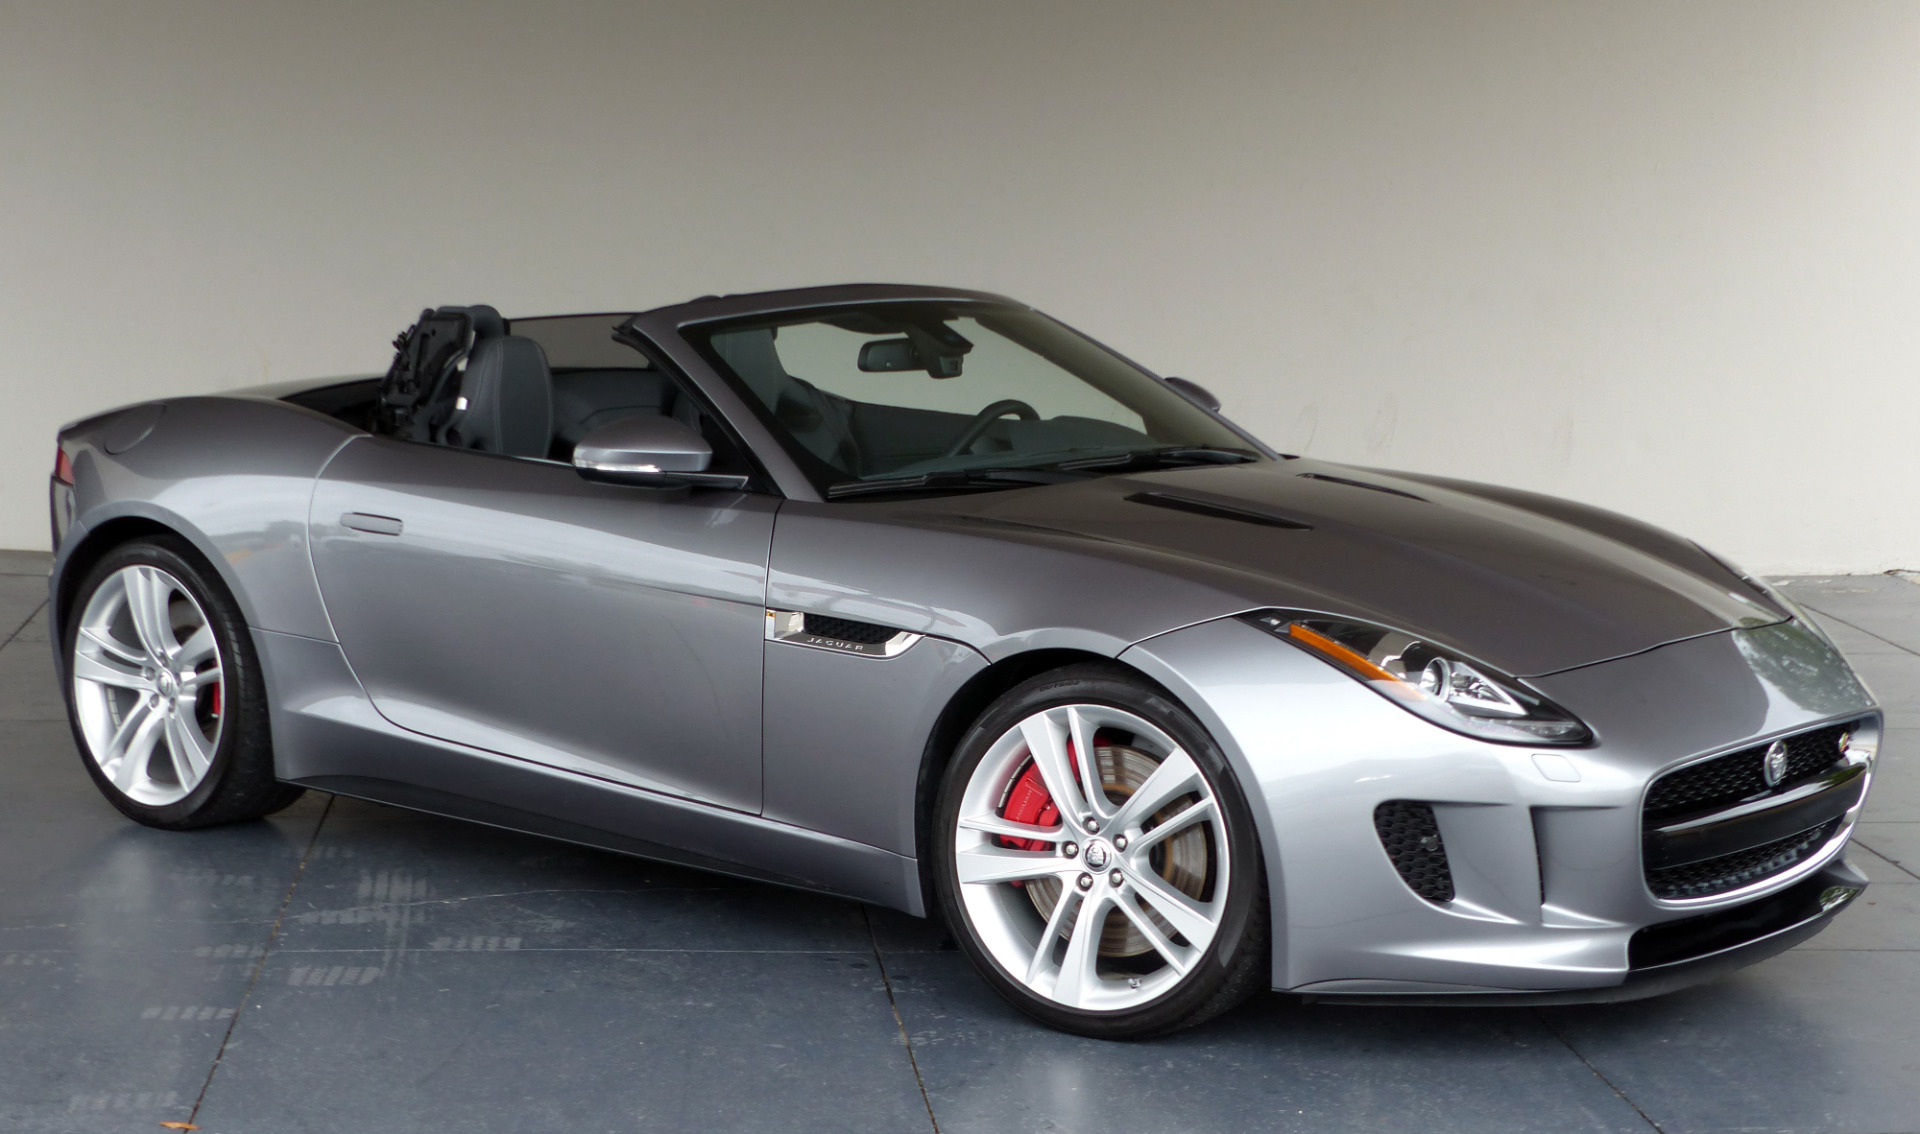 used 2014 jaguar f type v8 s marietta ga. Black Bedroom Furniture Sets. Home Design Ideas